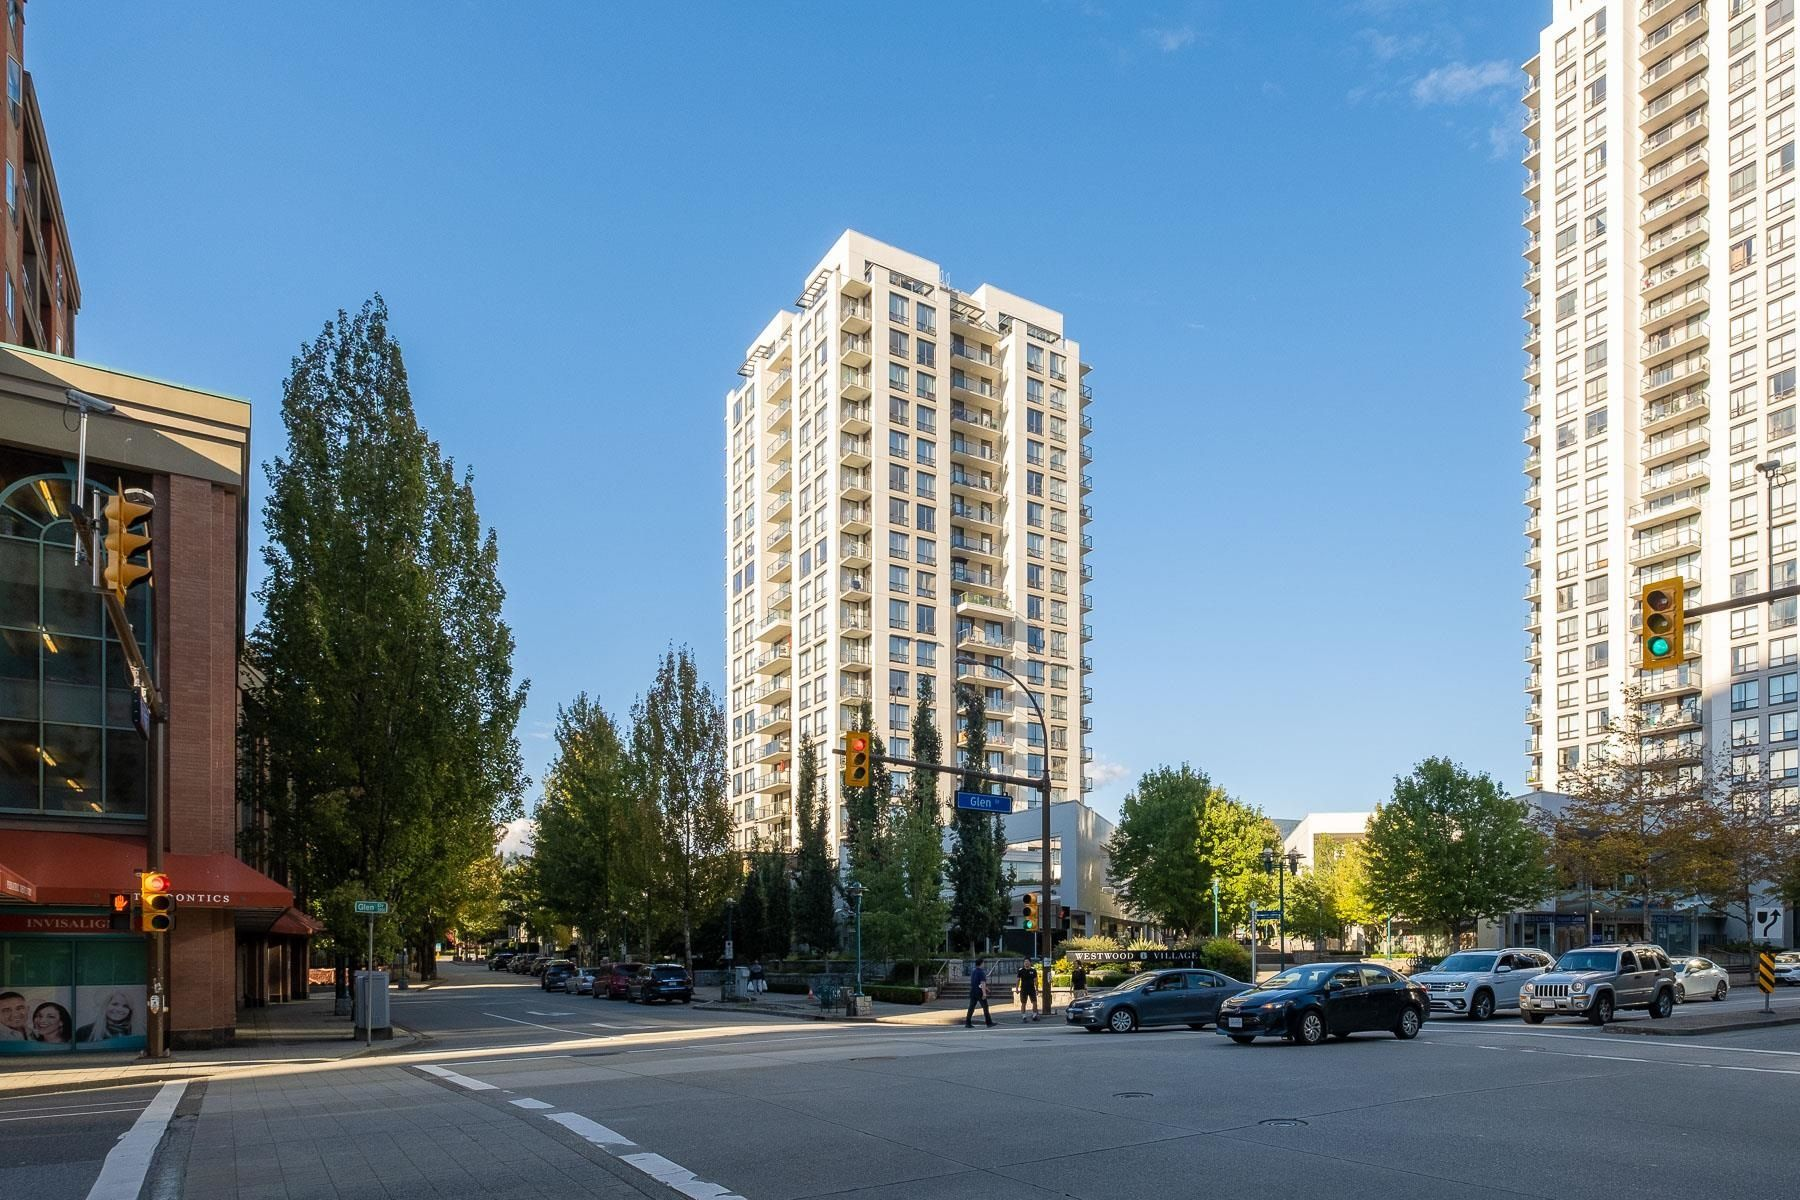 """Main Photo: 907 1185 THE HIGH Street in Coquitlam: North Coquitlam Condo for sale in """"THE CLAREMONT"""" : MLS®# R2615741"""